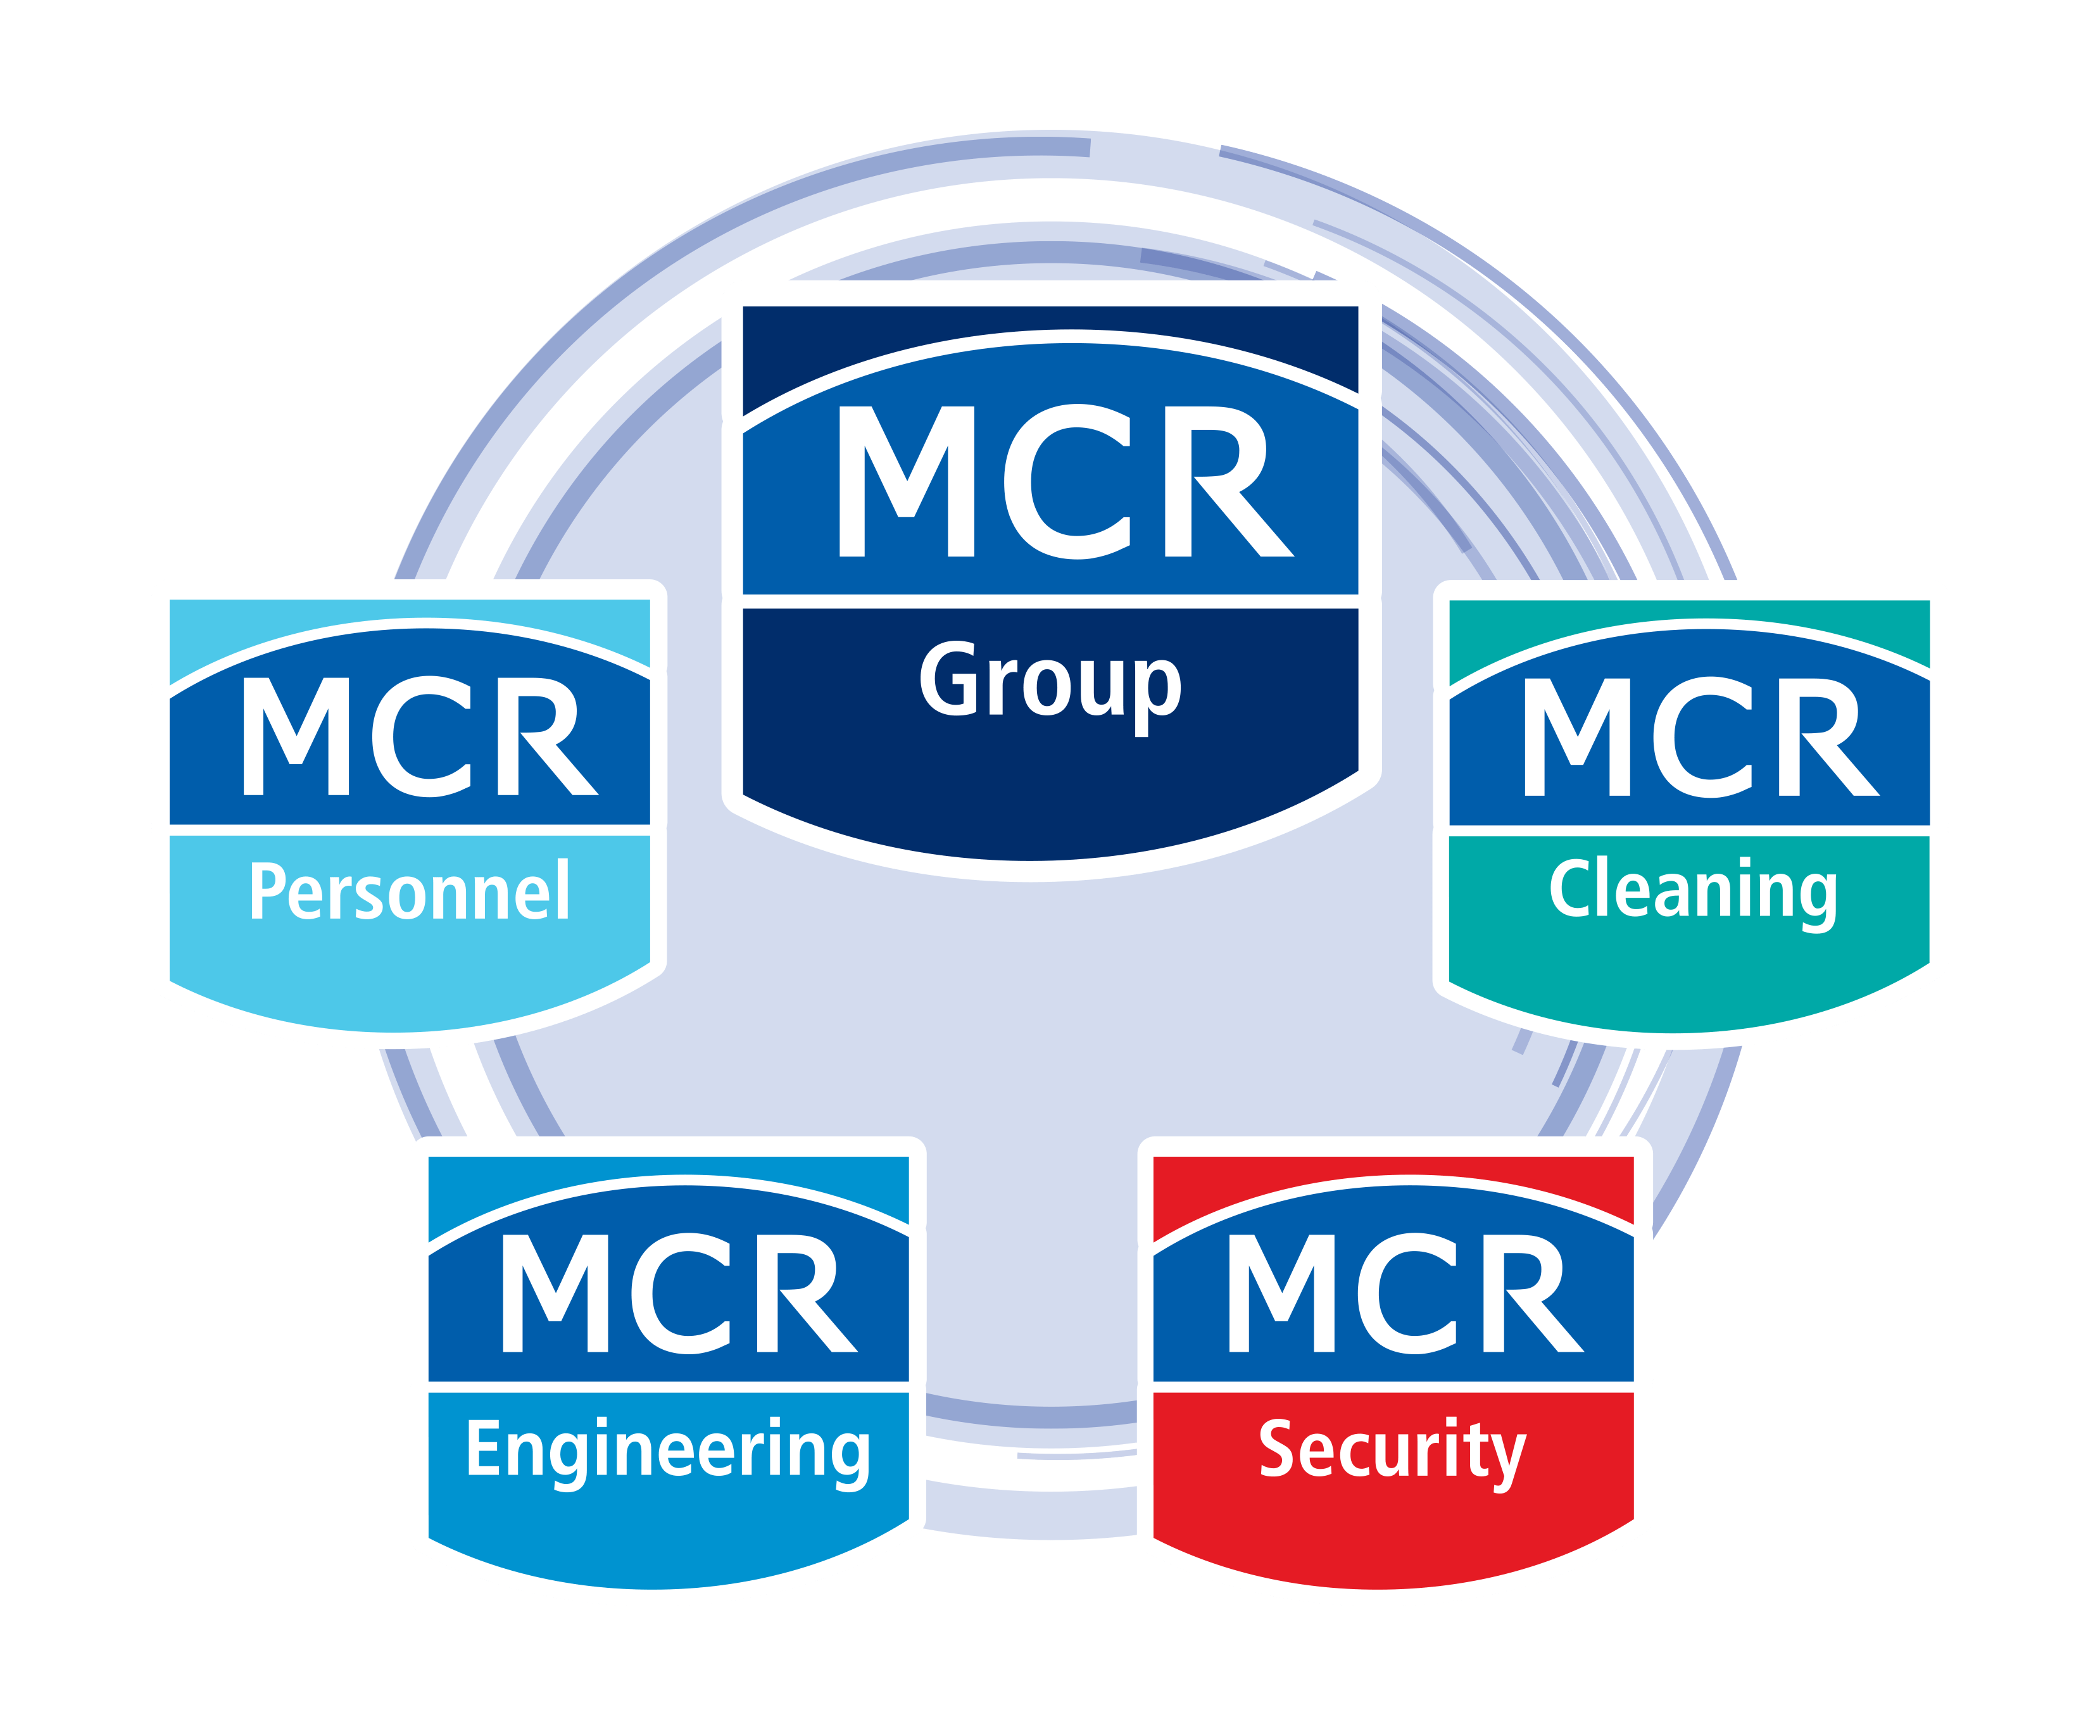 MCR Security are Hiring a Security Officer!